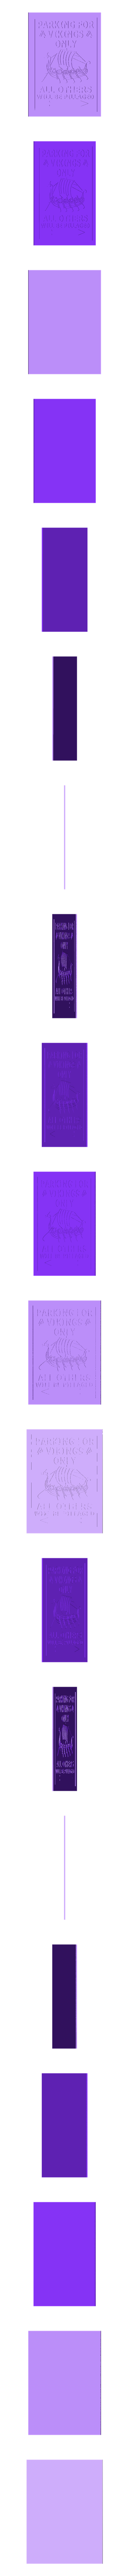 LOL_-_Vickings_-_Parking_for_Vickings_Only_v1.stl Download free STL file LOL - Vikings - Parking for Vickings Only • 3D printing design, yb__magiic